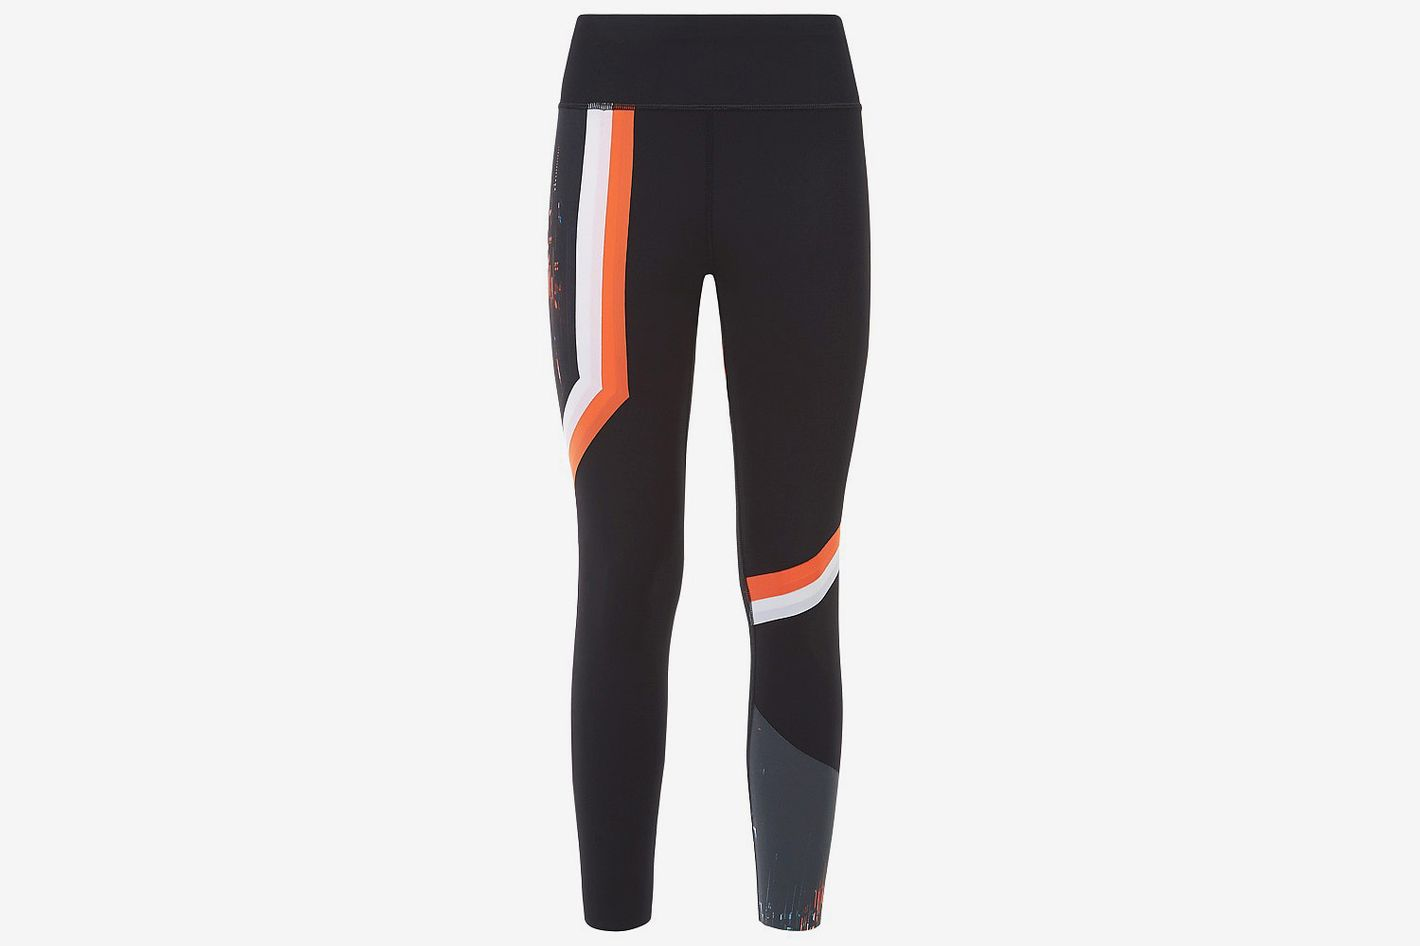 35a2dc948a 10 High-Waisted Leggings That are Perfect for Your Workout